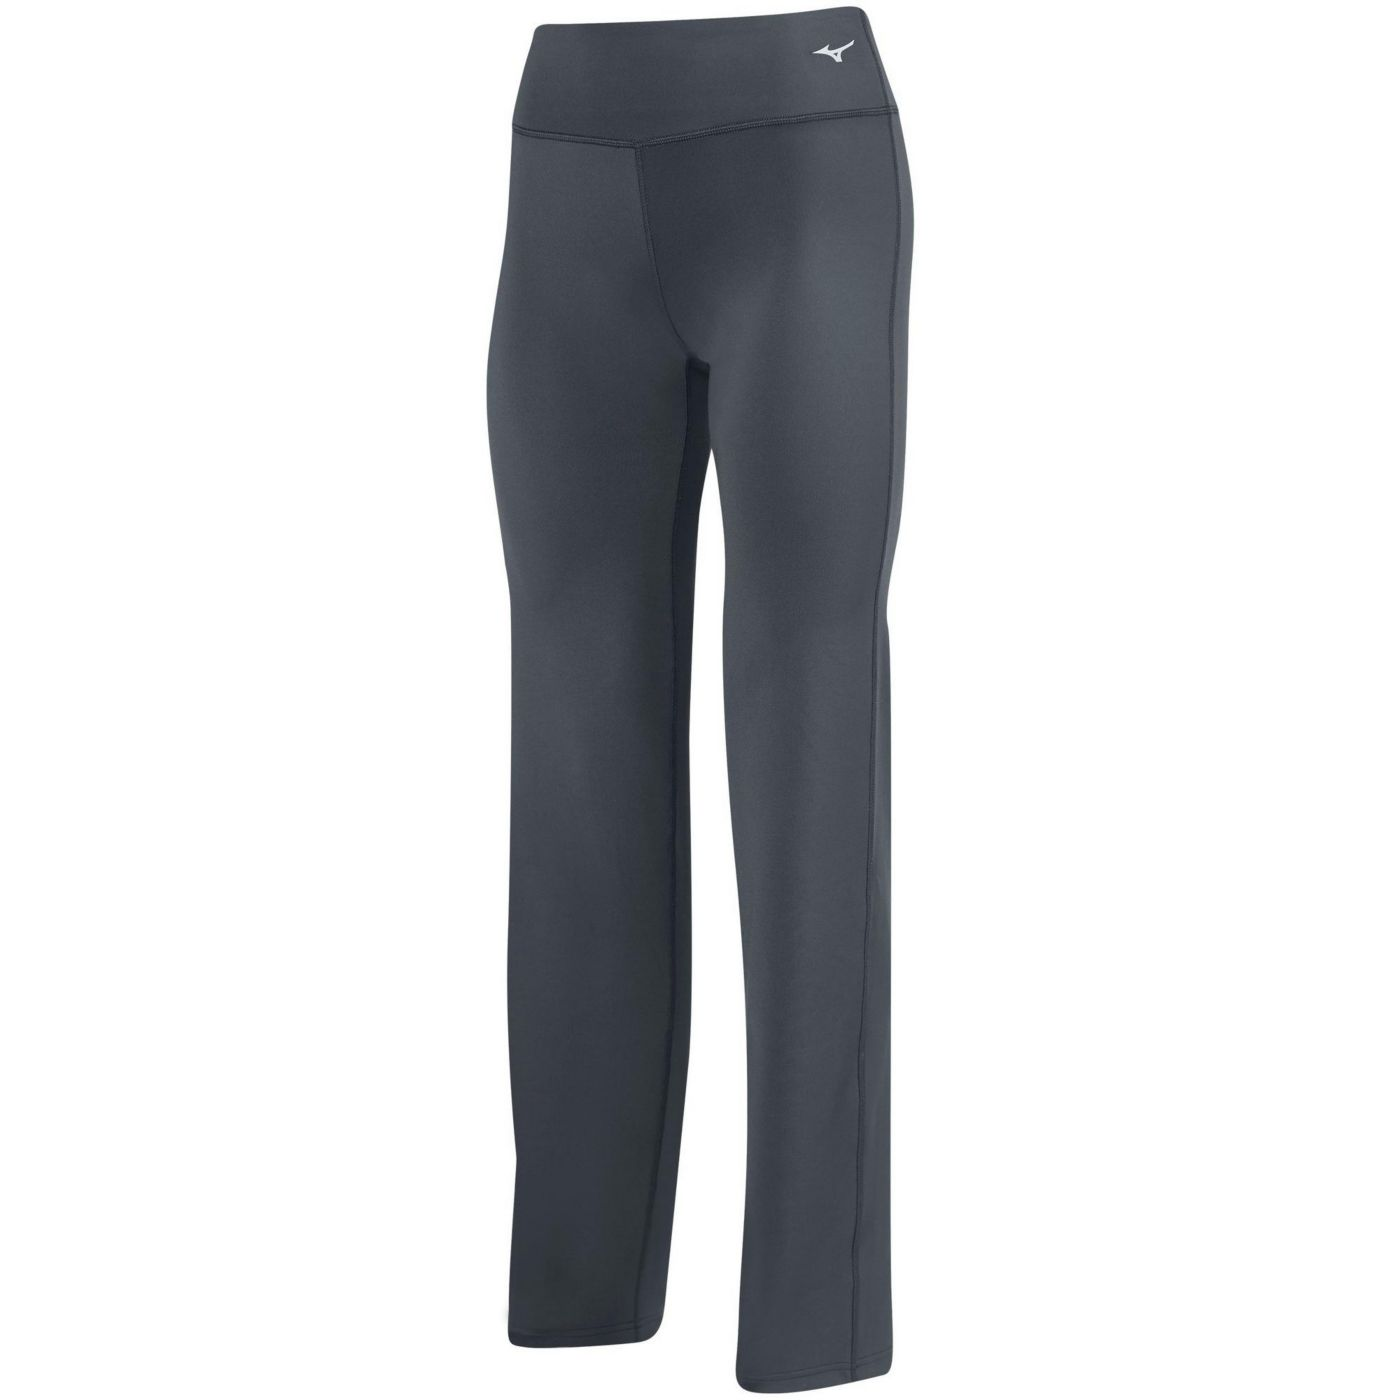 Mizuno Youth Align Volleyball Pants